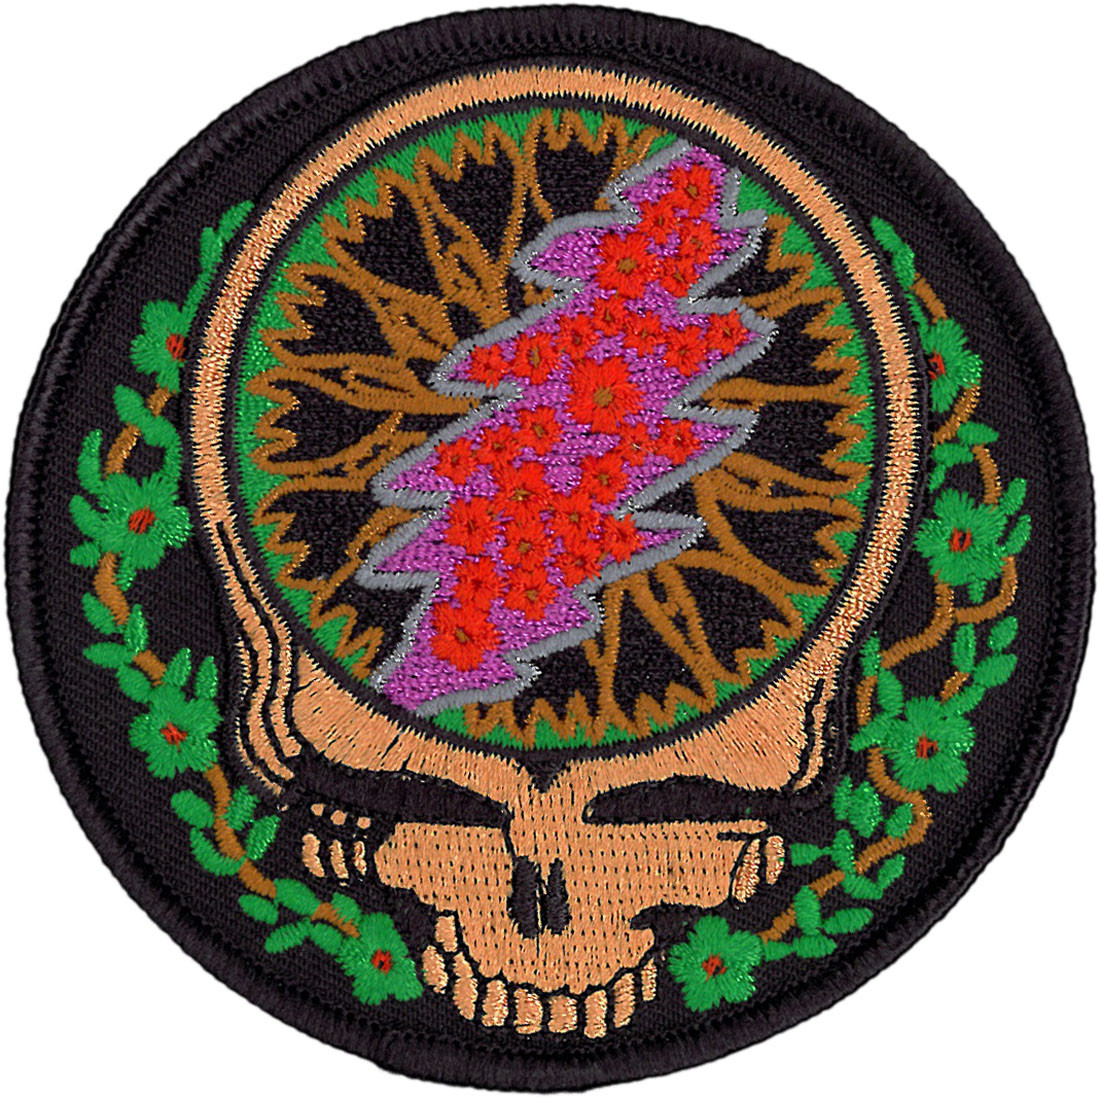 GD SYF Vines And Roses Patch